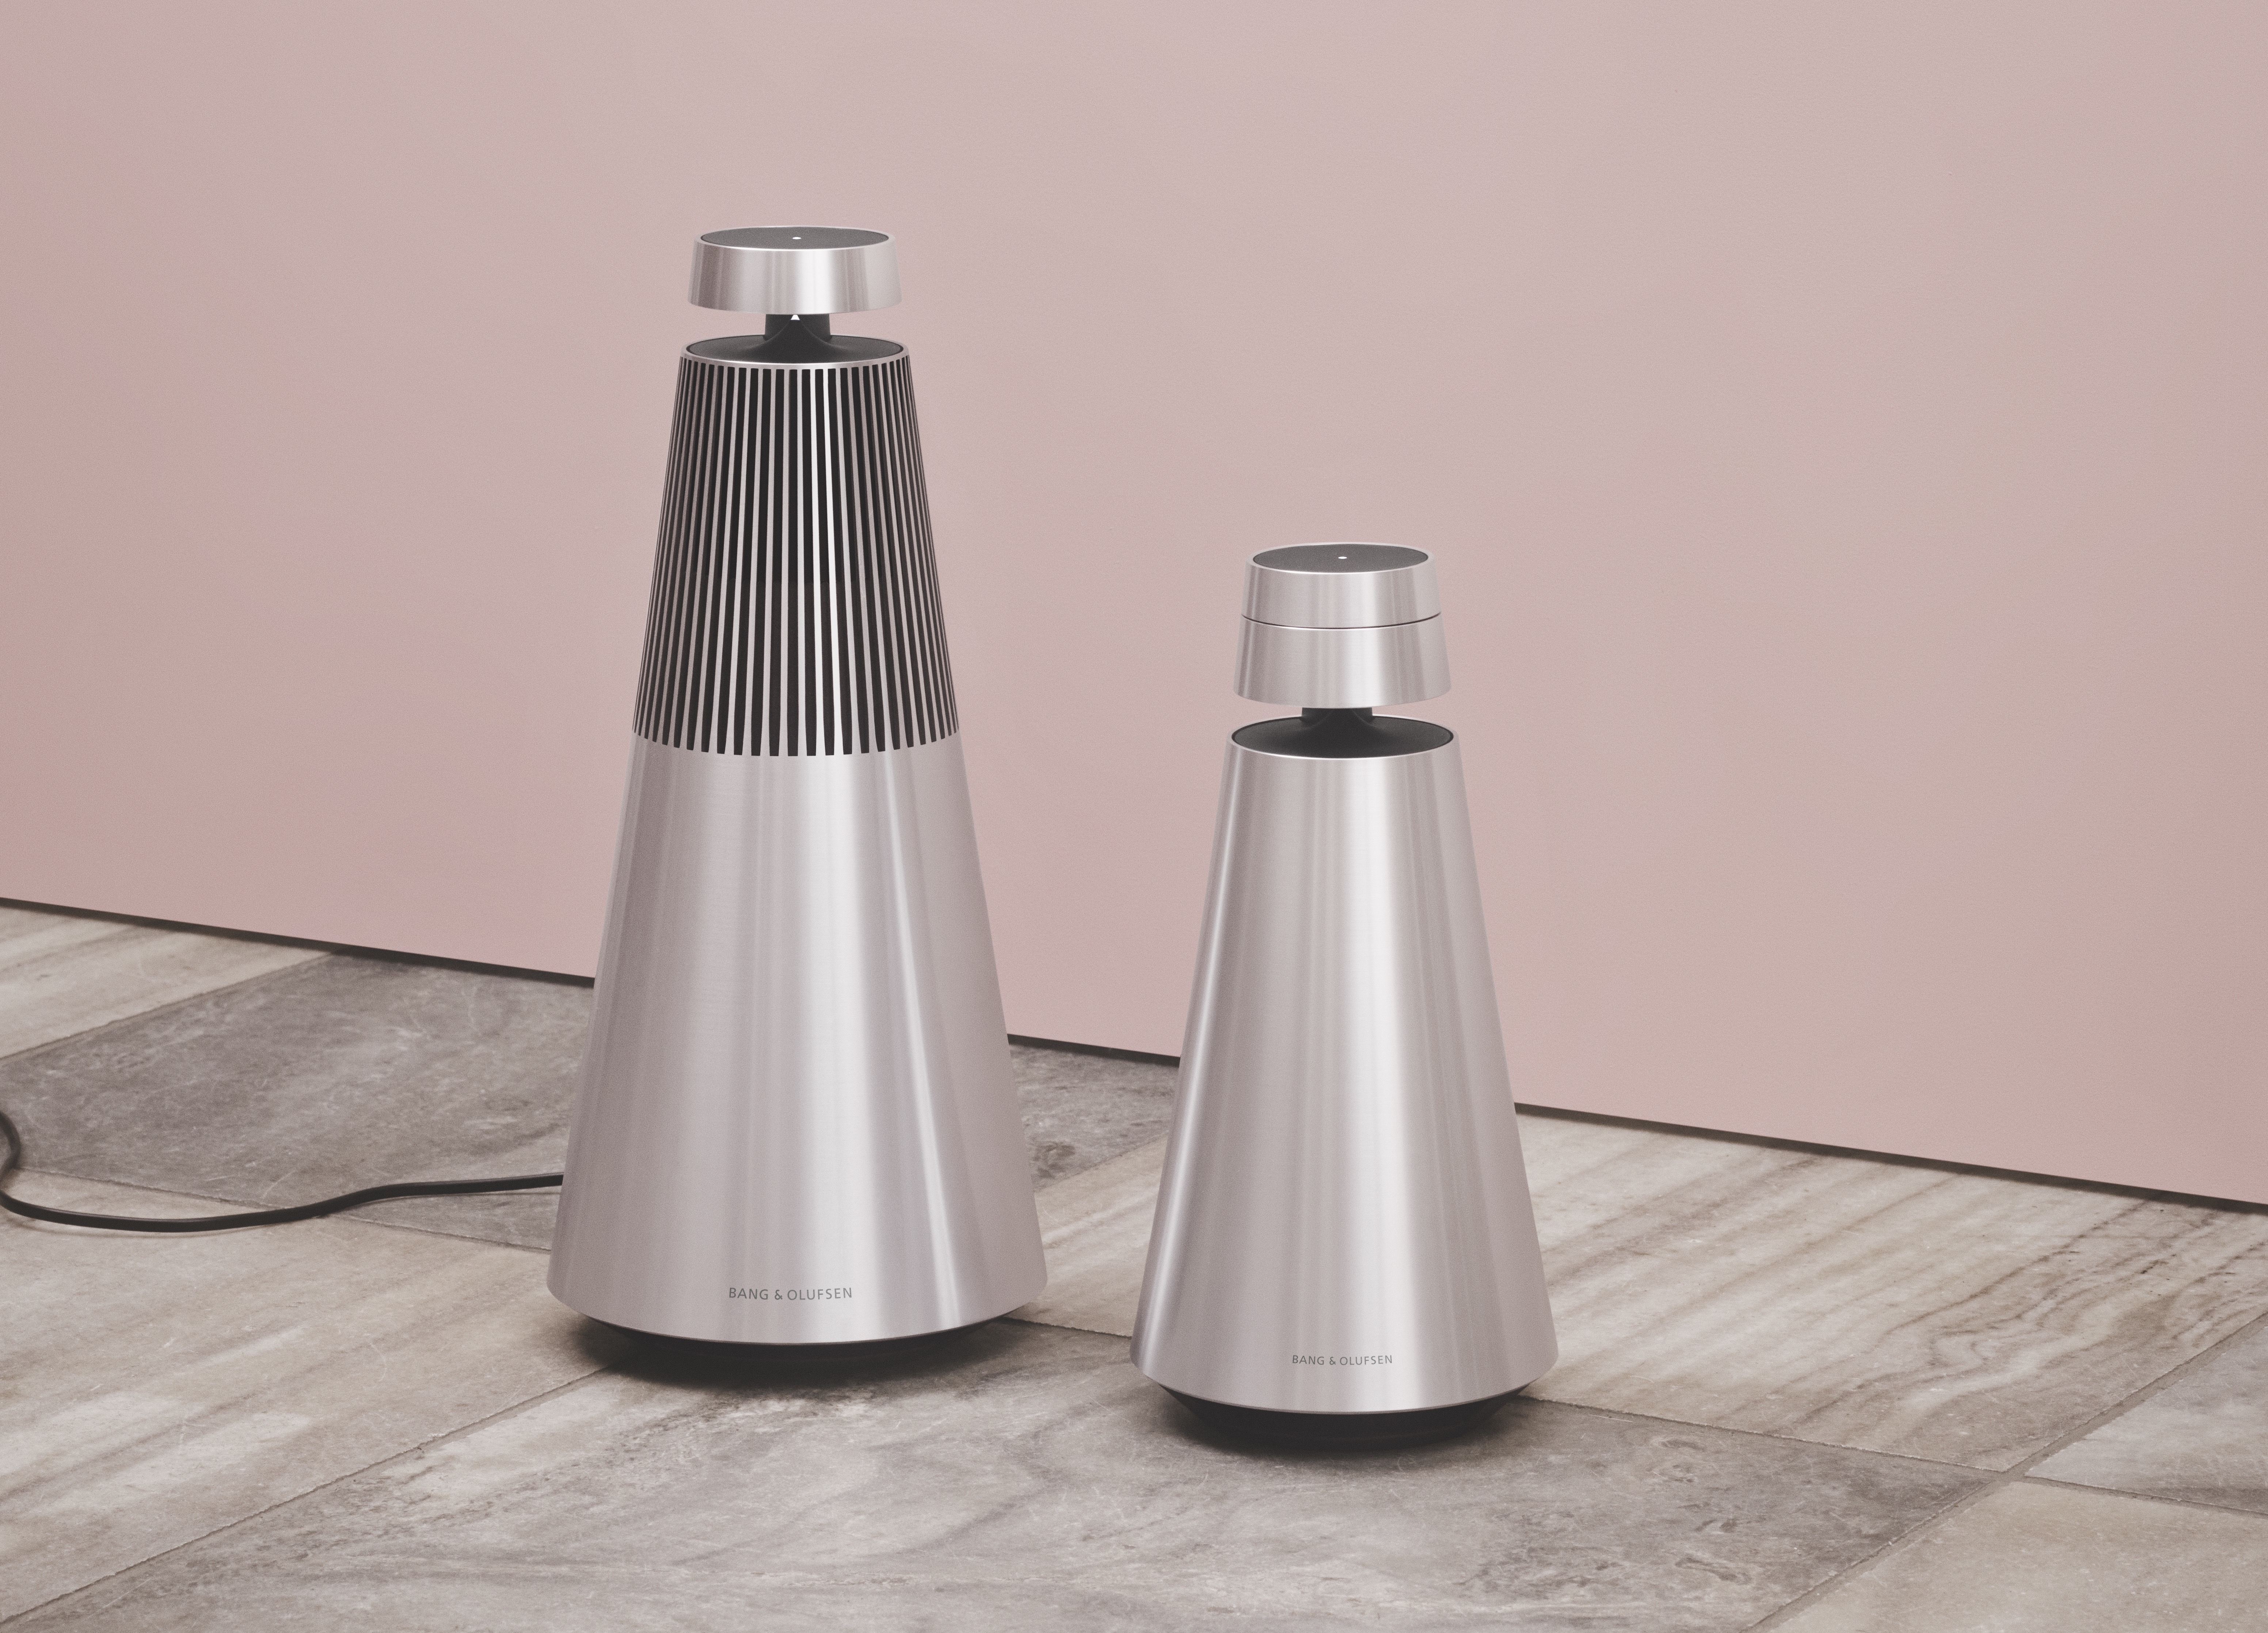 Bang & Olufsen Introduces The Evolutionary BeoSound 1 & 2